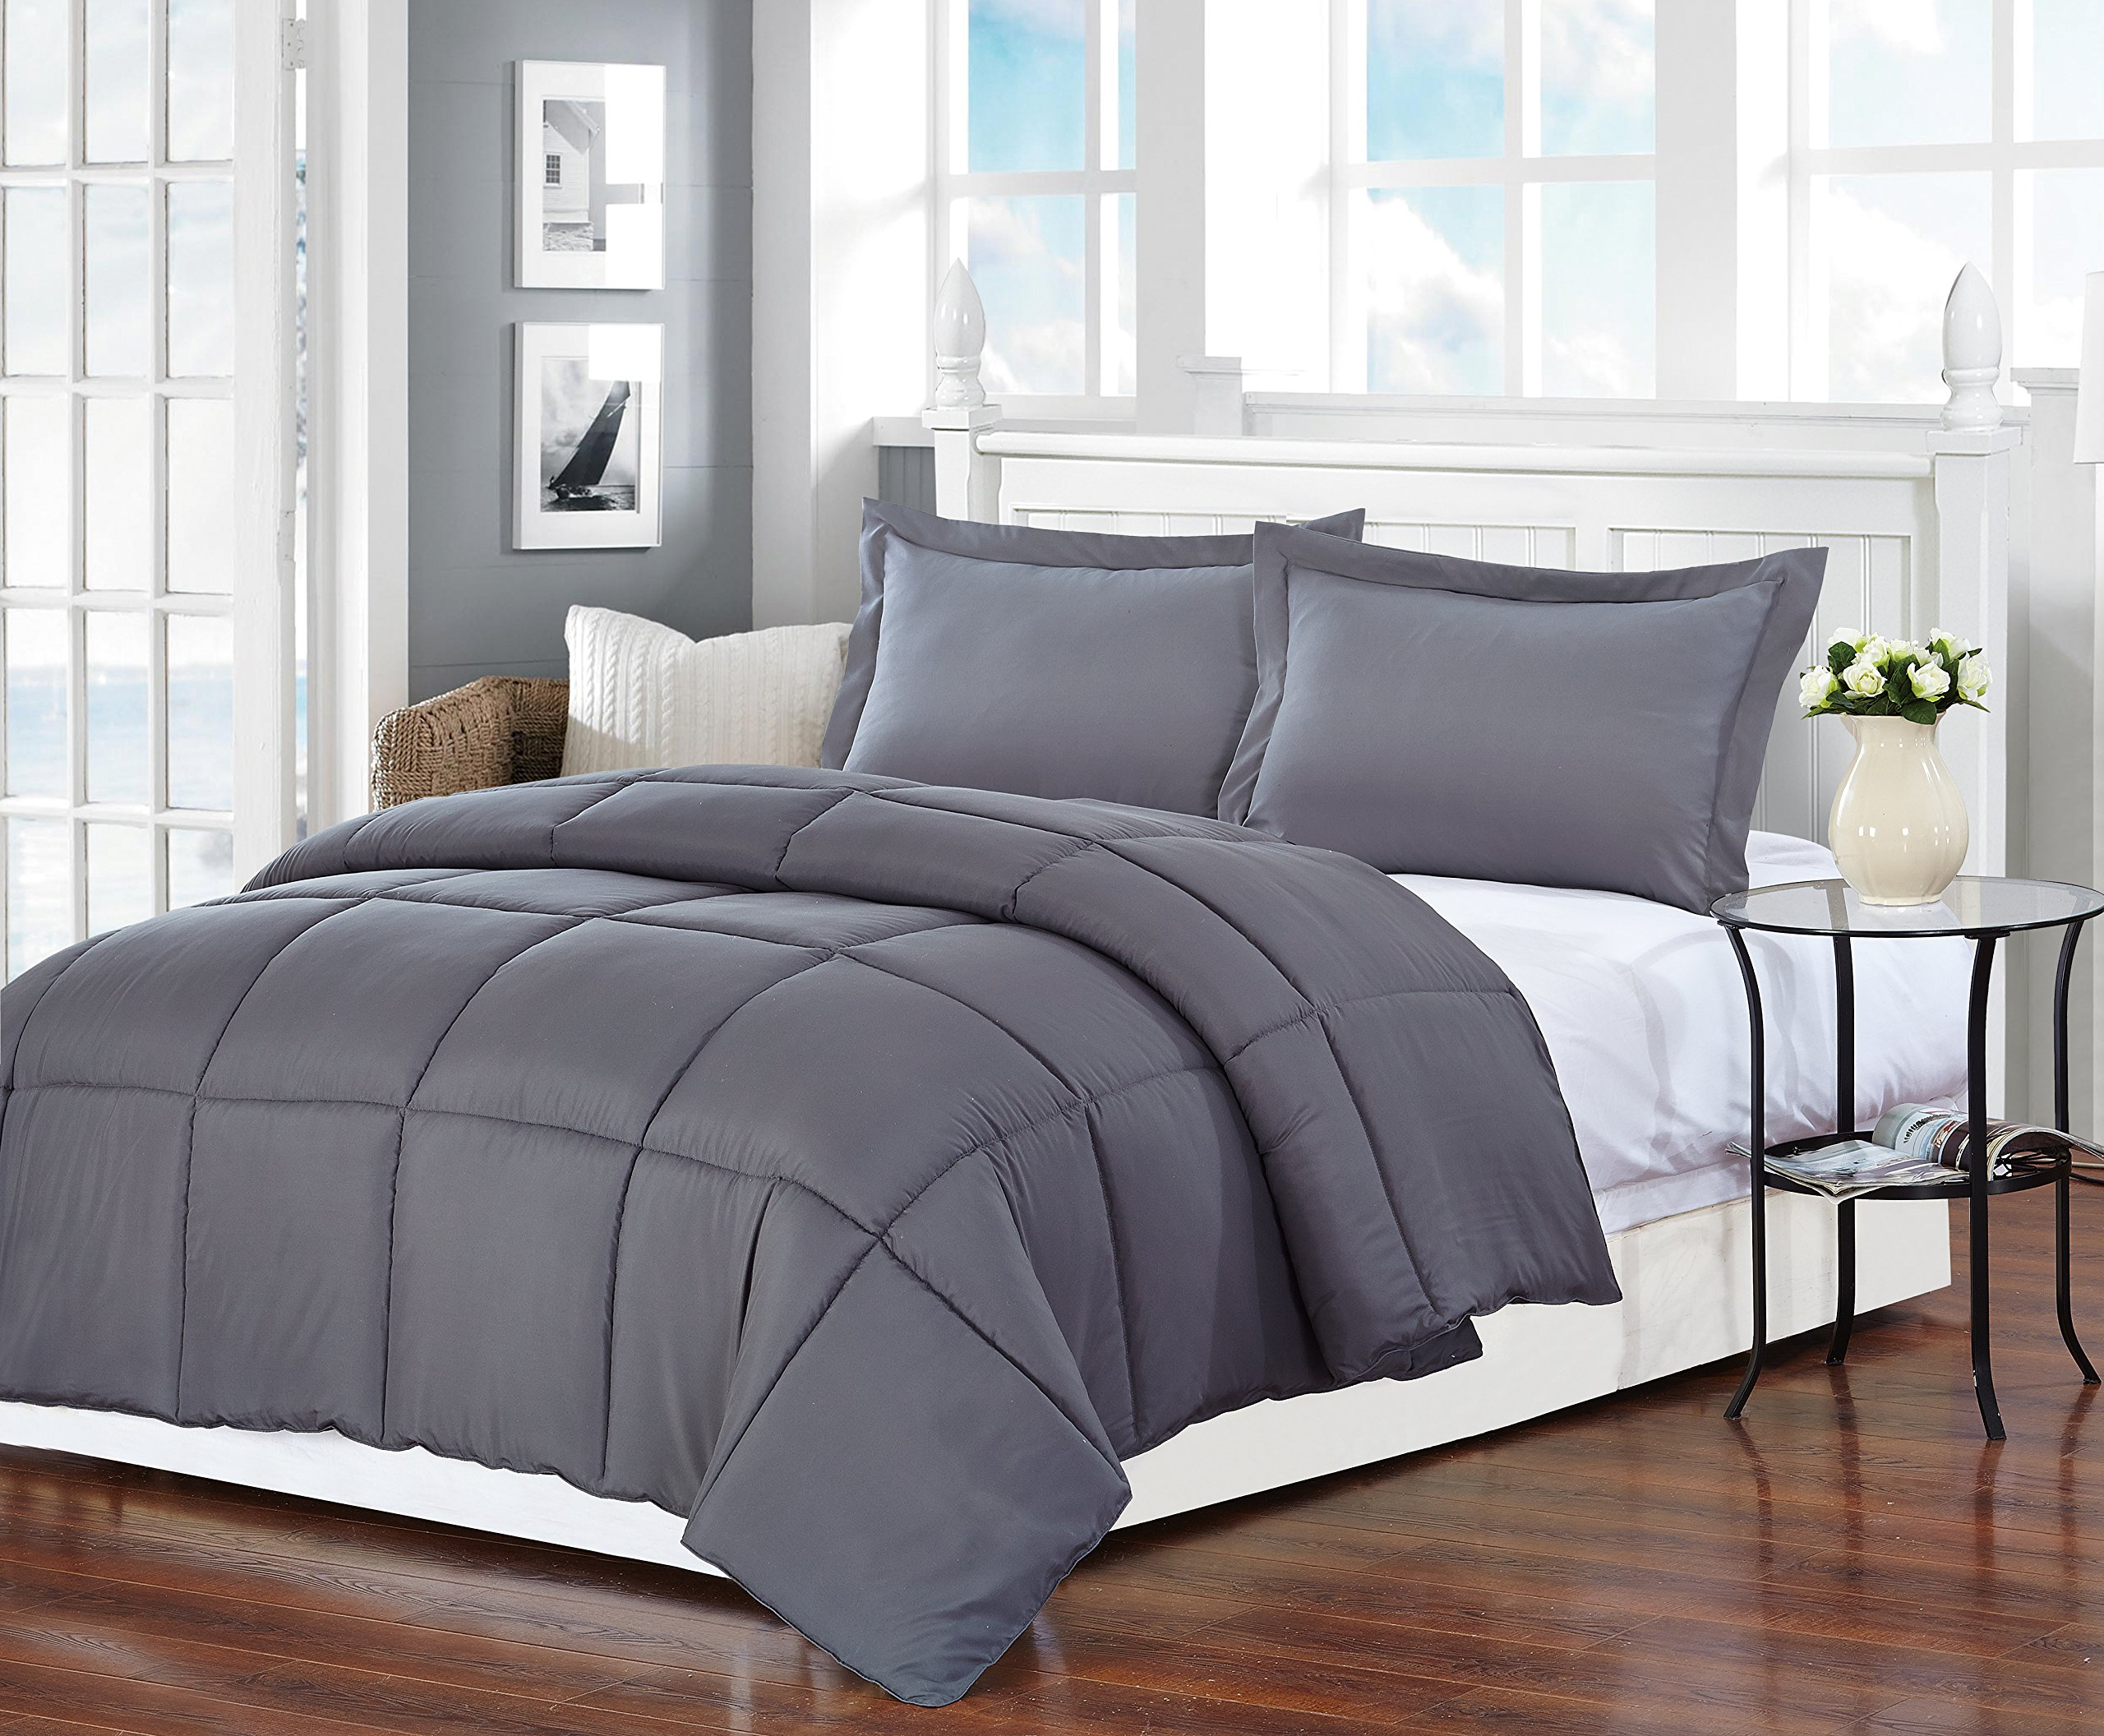 duvet insert quilt warmest cover difference what between of inserts types whats filling coverlet the how filler to set vs without alternative is a best size in and full comforter buy down for